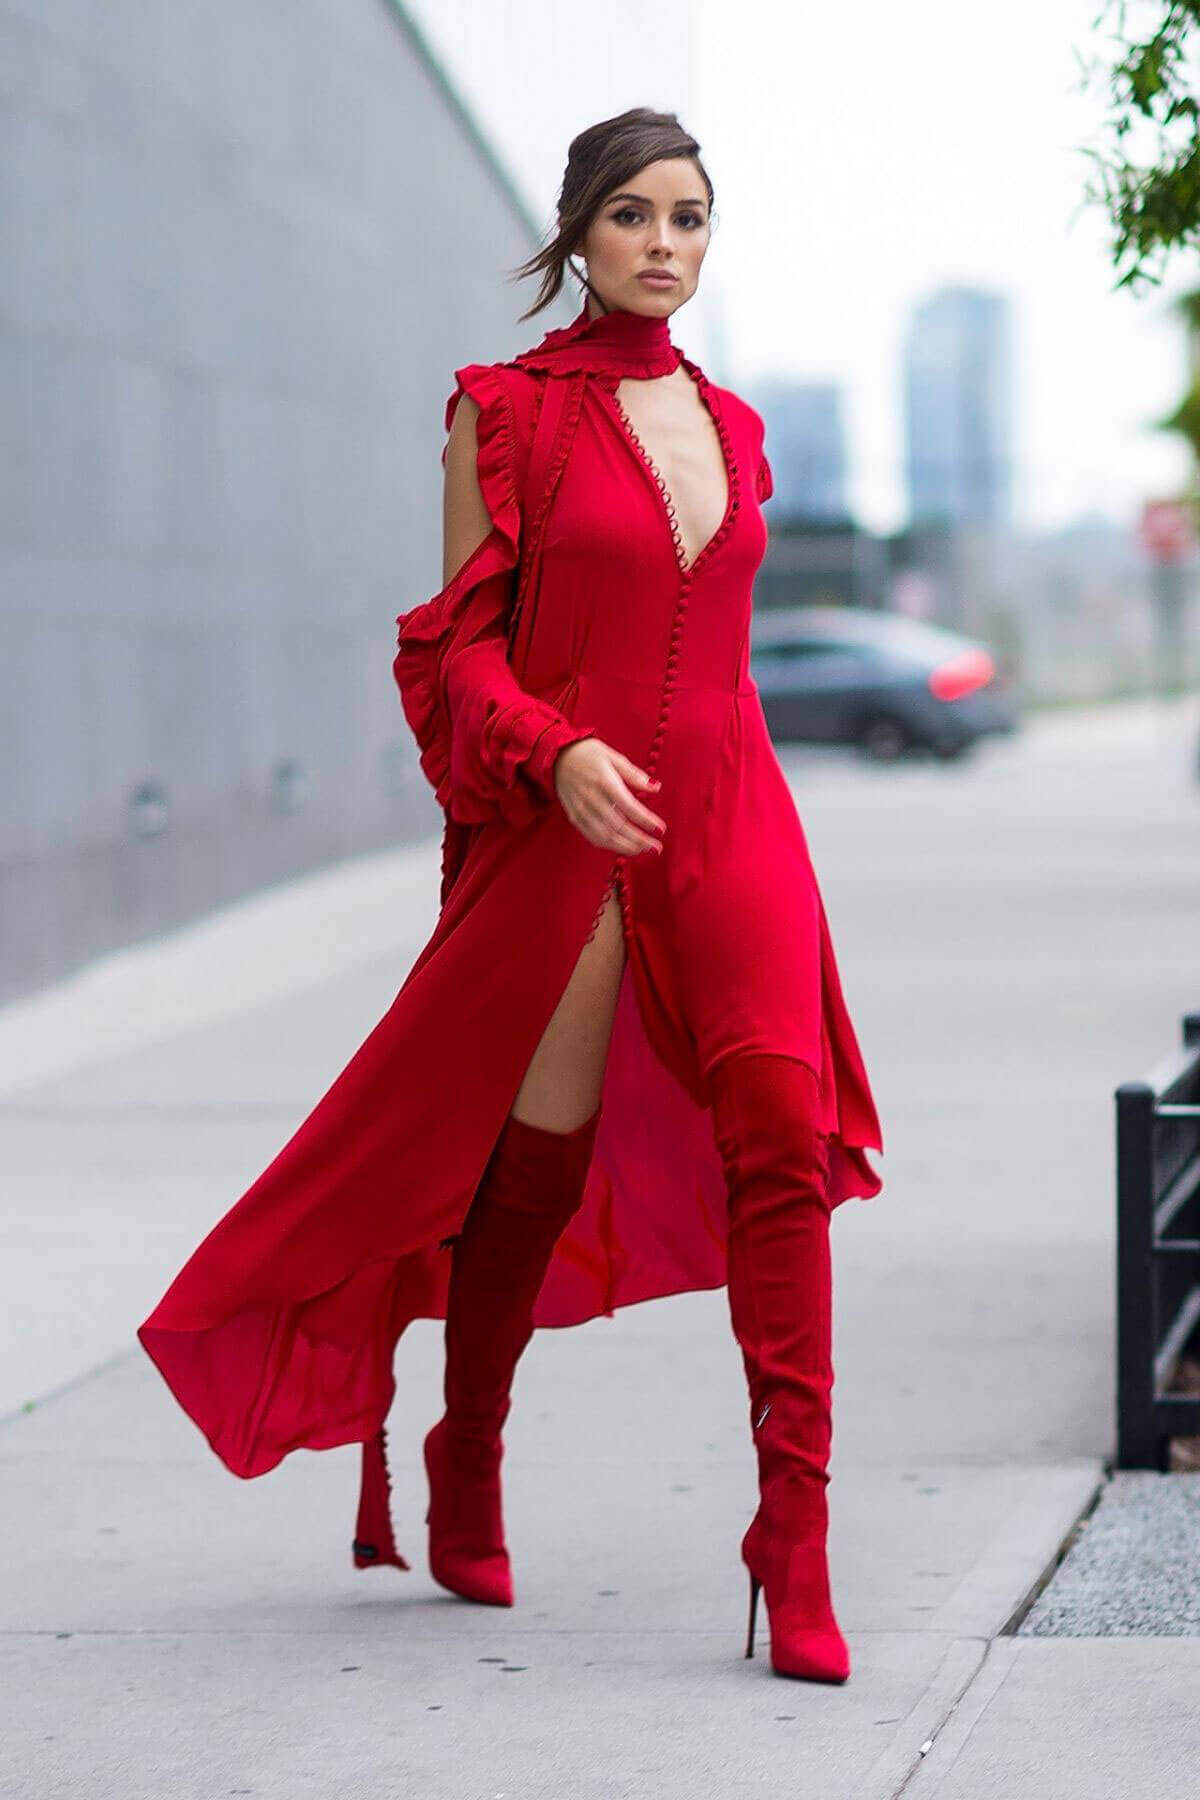 Olivia Culpo Wearing Red Dress Out and About in Long Island